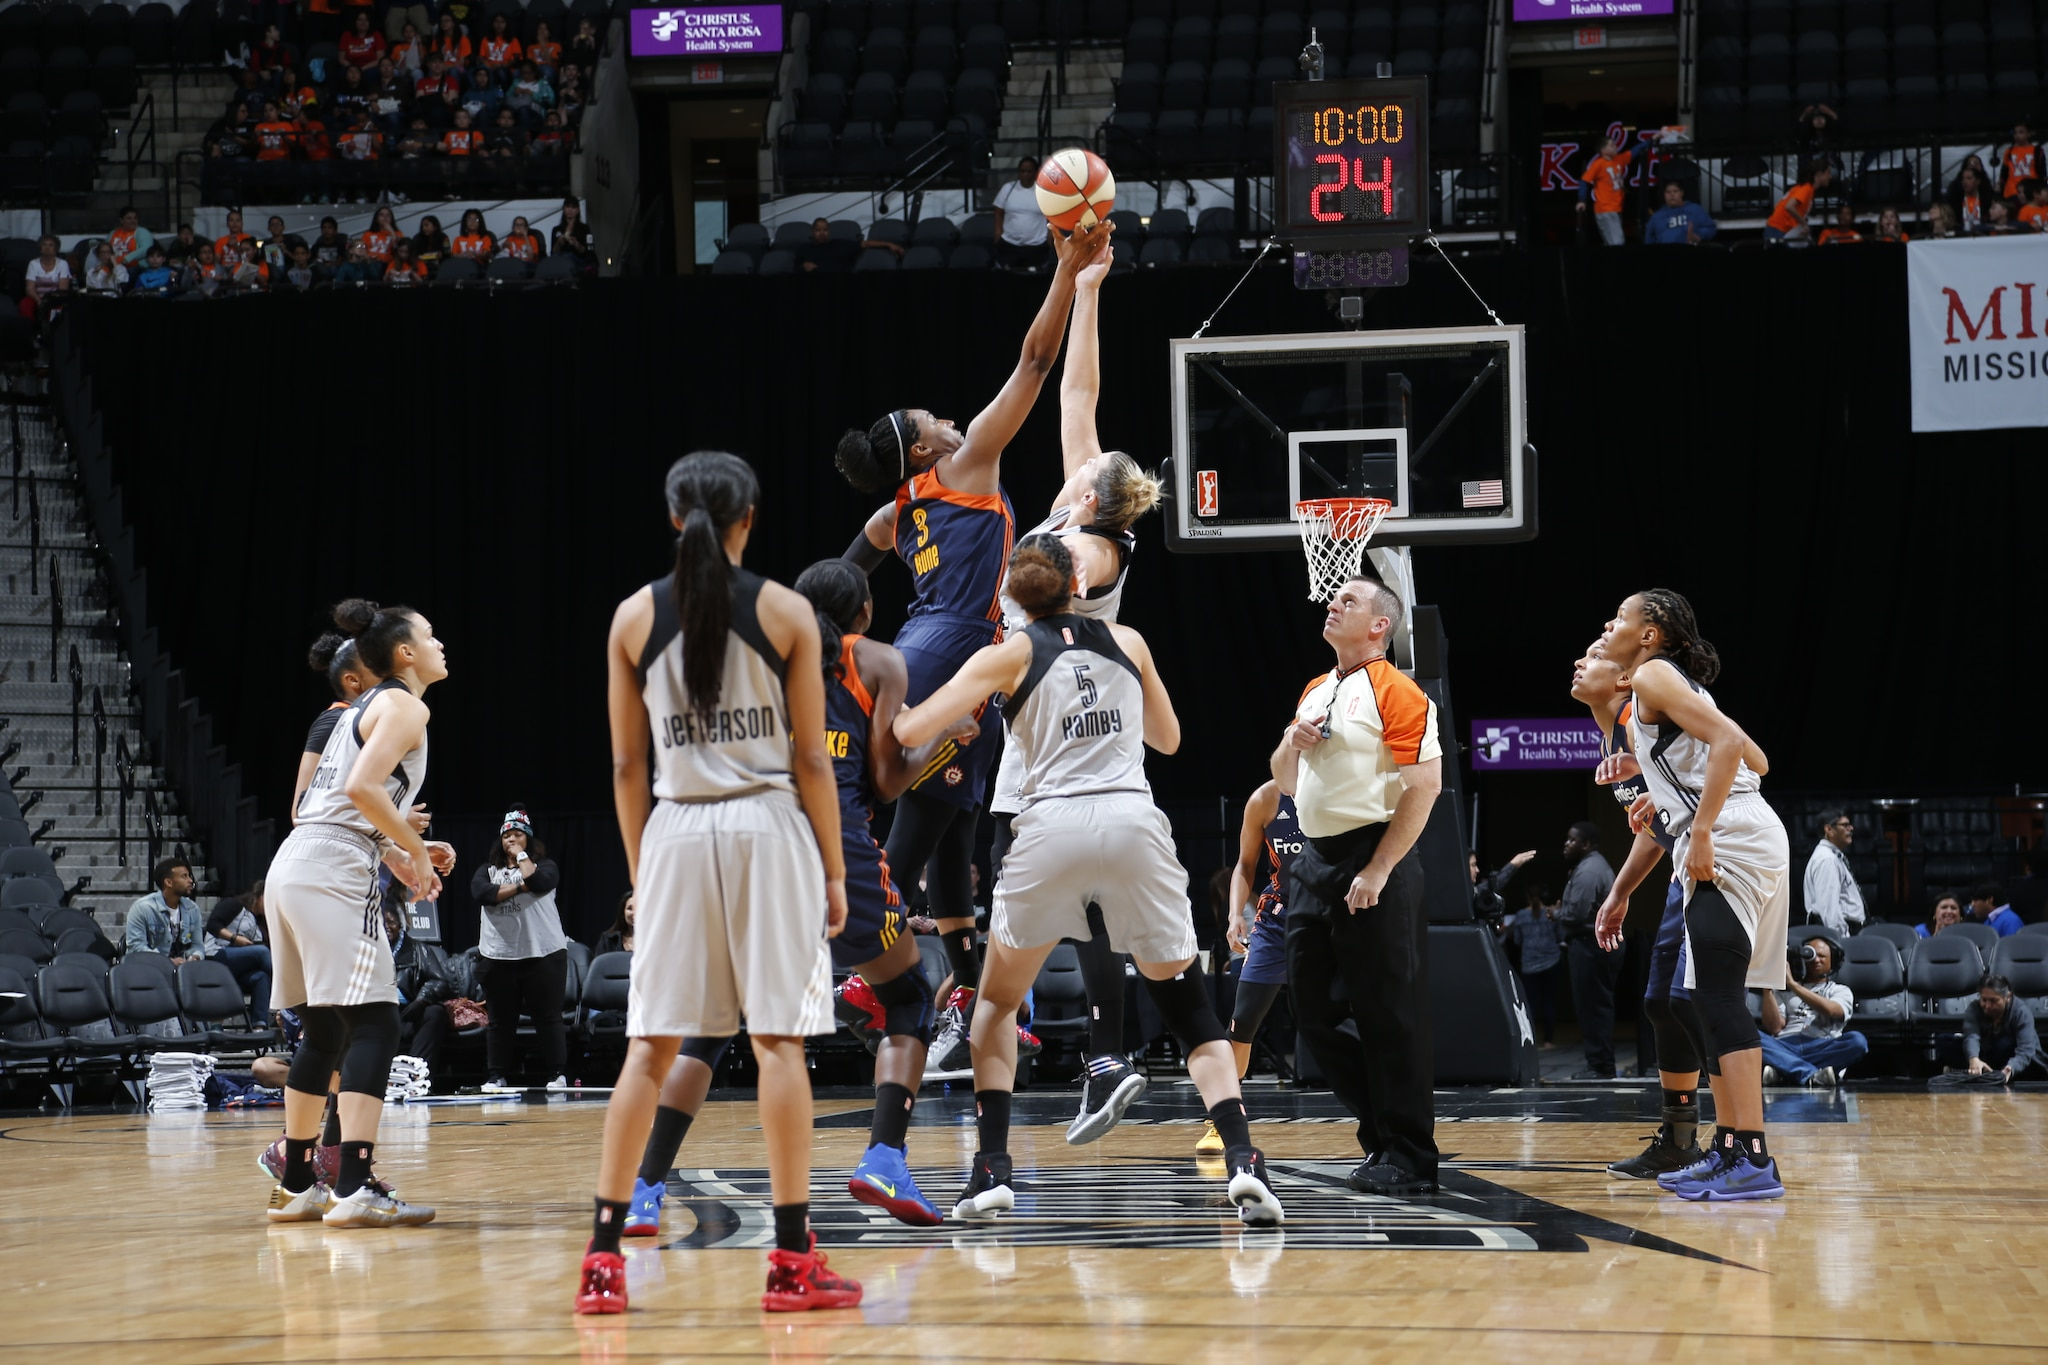 SAN ANTONIO, TX - MAY 19: A jumball between the Connecticut Sun and the San Antonio Stars on May 19, 2016 at AT&T Center in San Antonio, Texas. NOTE TO USER: User expressly acknowledges and agrees that, by downloading and or using this Photograph, user is consenting to the terms and conditions of the Getty Images License Agreement. Mandatory Copyright Notice: Copyright 2016 NBAE (Photo by Chris Covatta/NBAE via Getty Images)